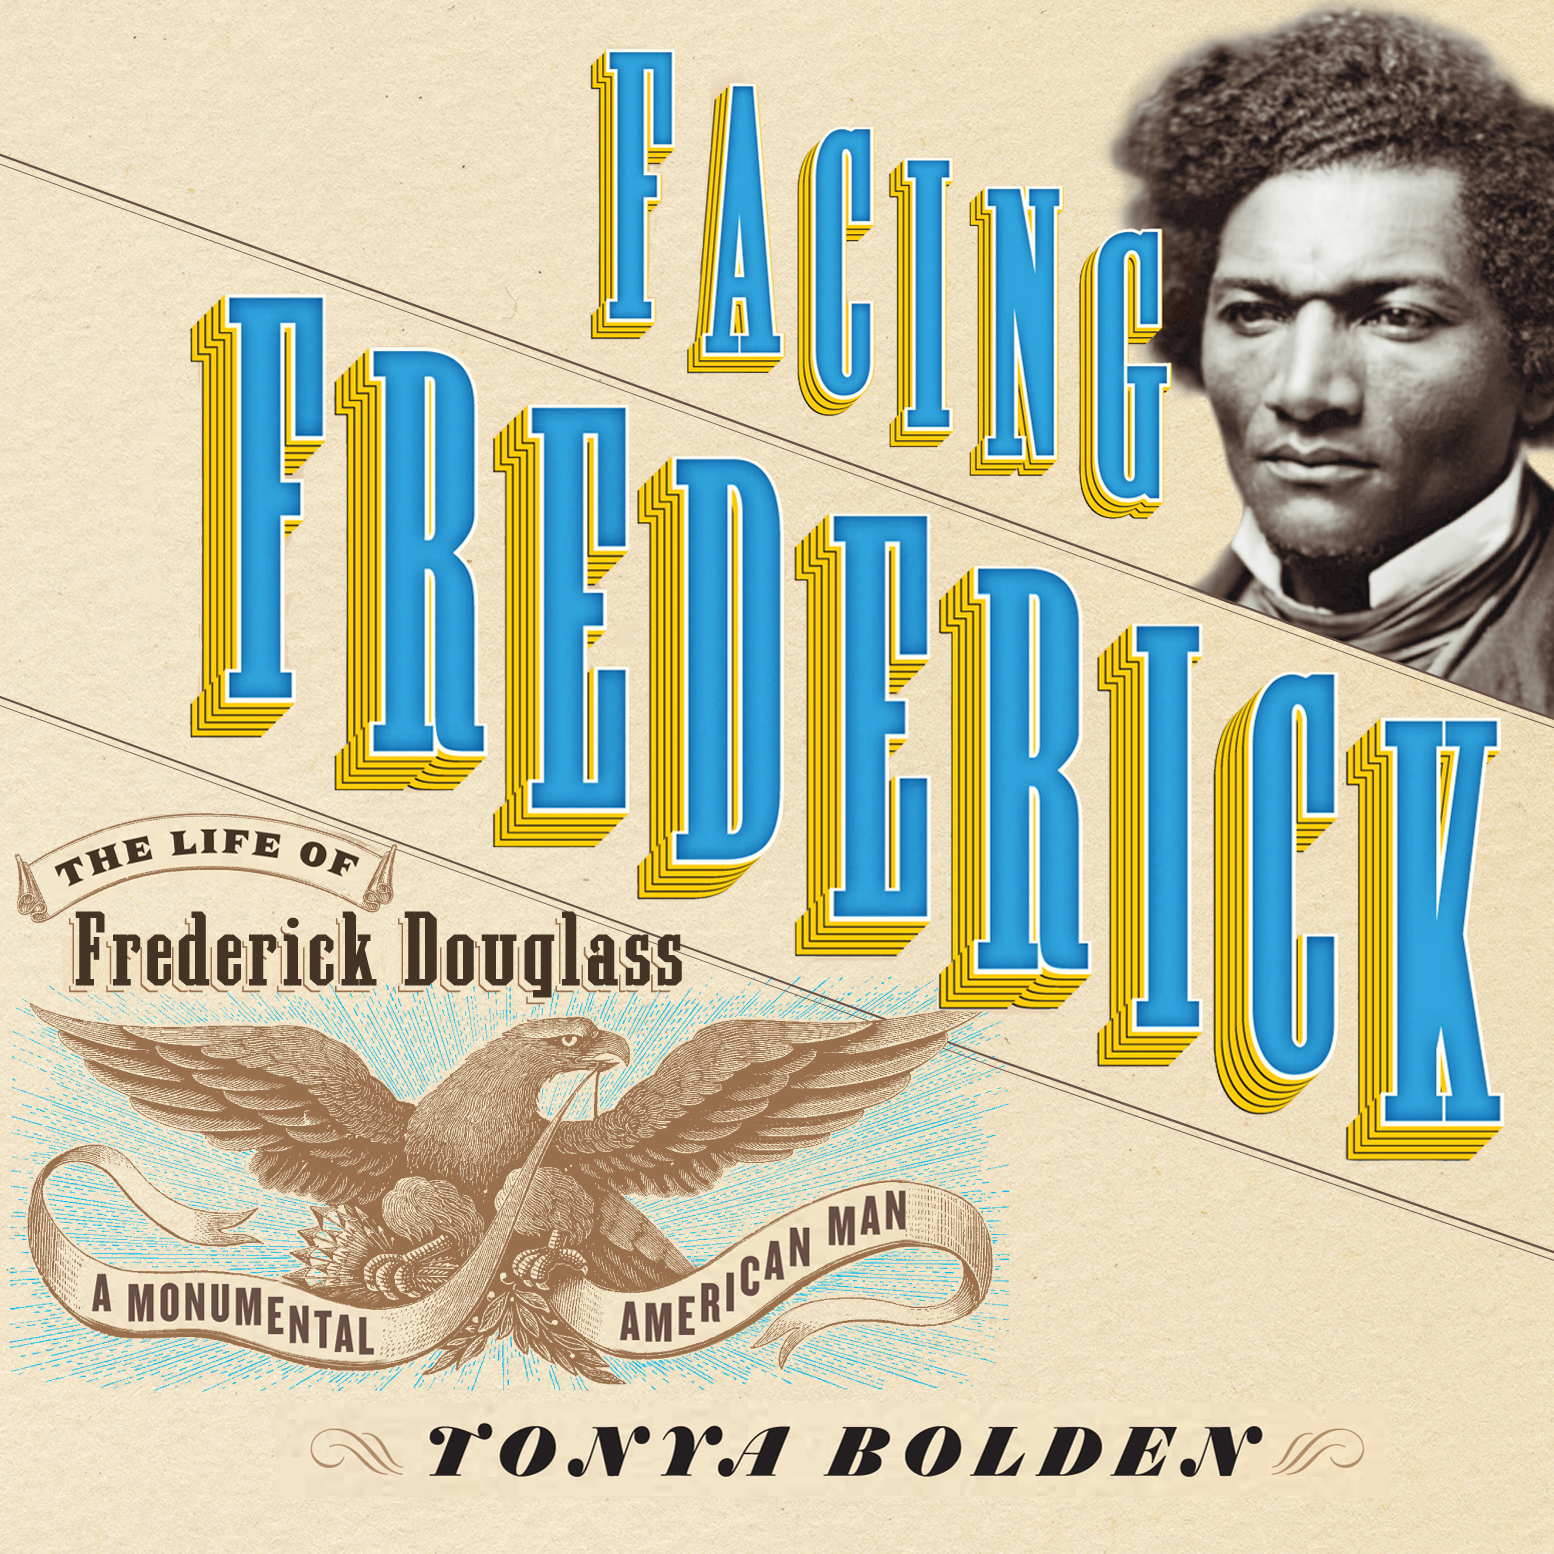 Printable Facing Frederick: The Life of Frederick Douglass, a Monumental American Man Audiobook Cover Art